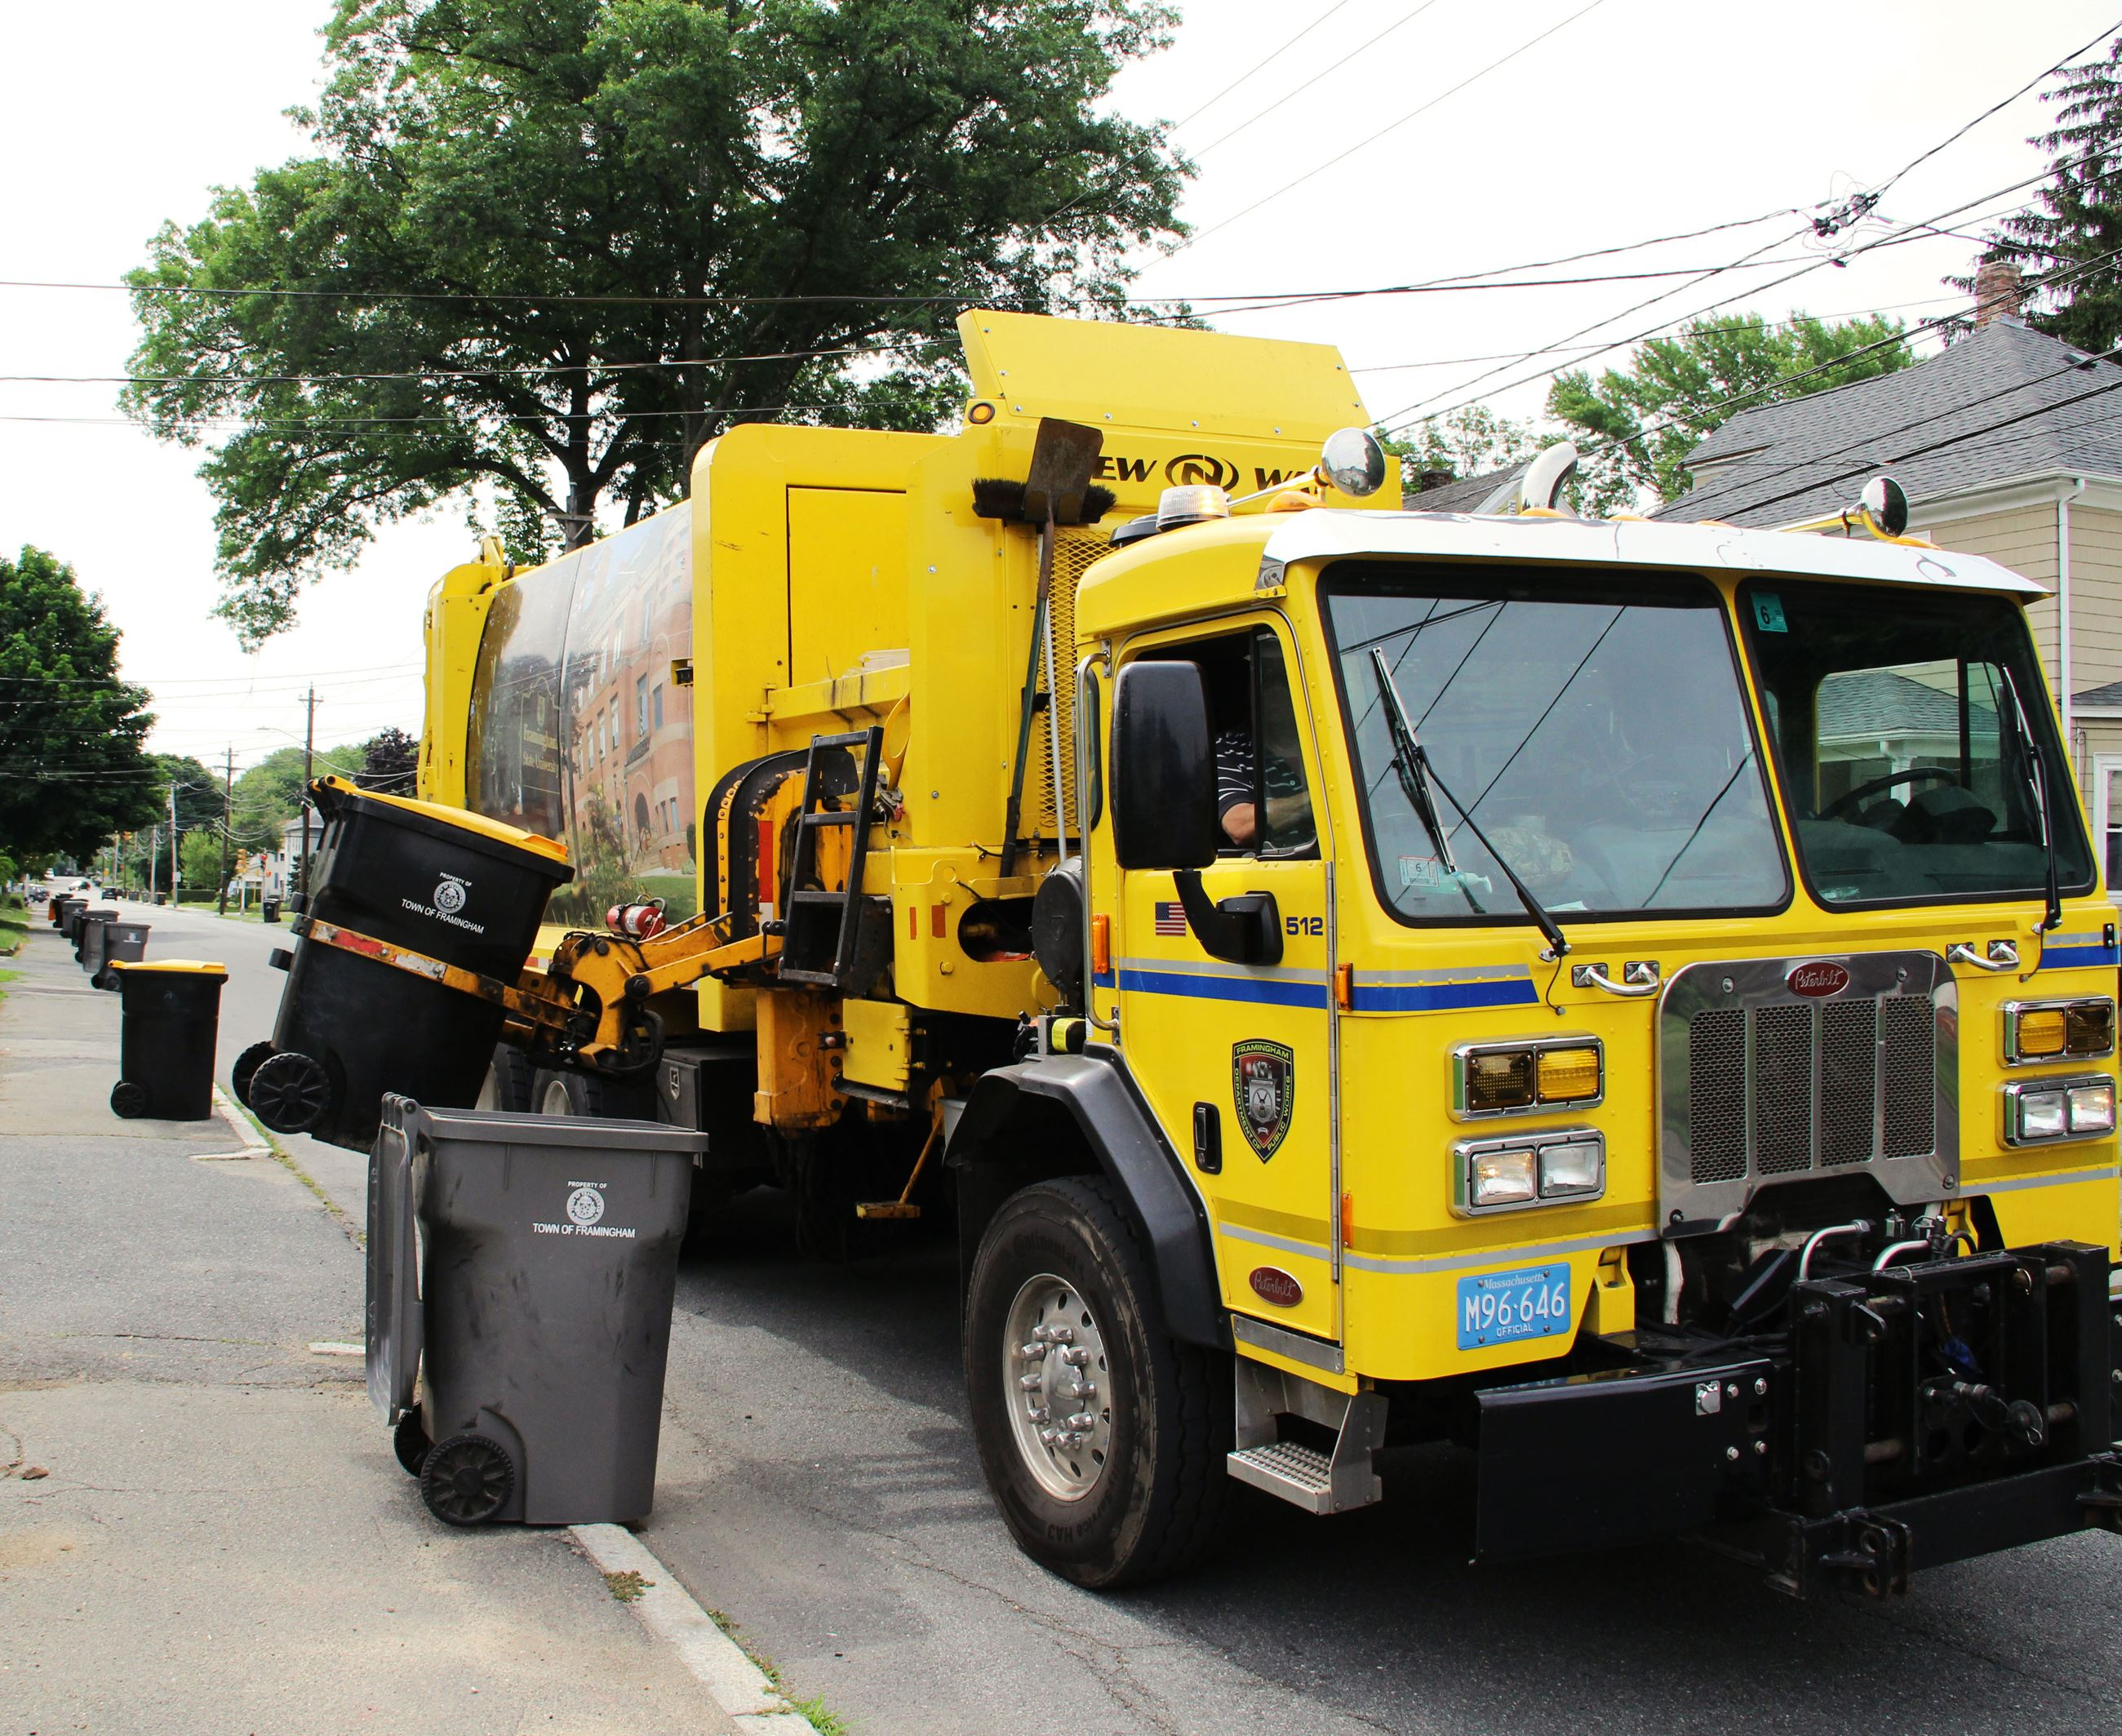 Sanitation Truck Collecting Recyclables